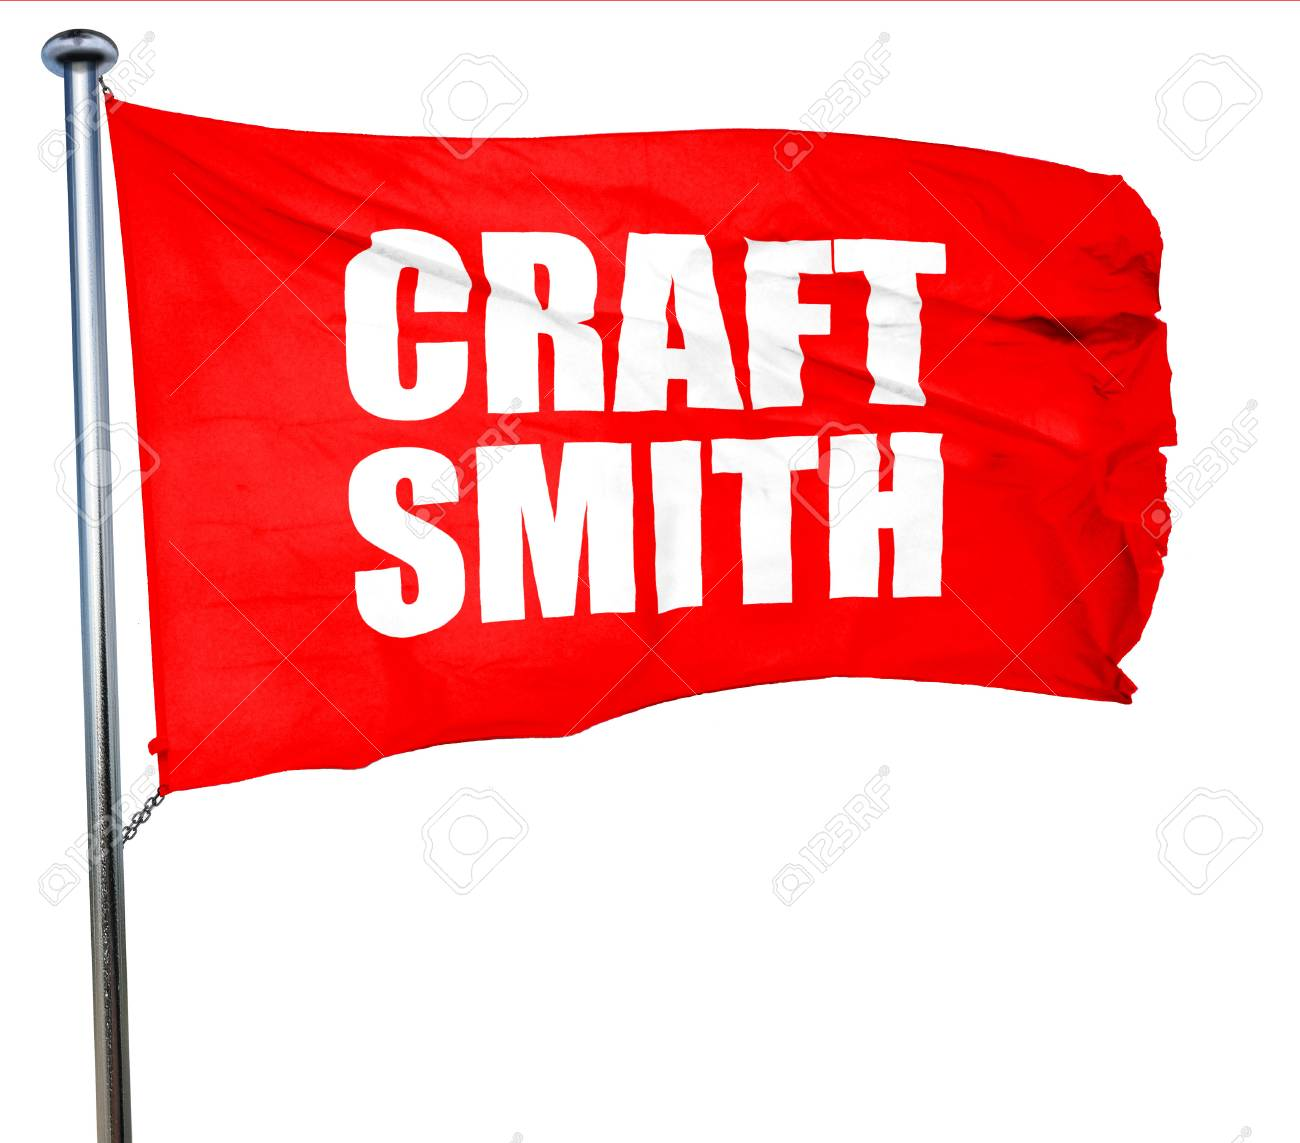 craft smith, 3D rendering, a red waving flag